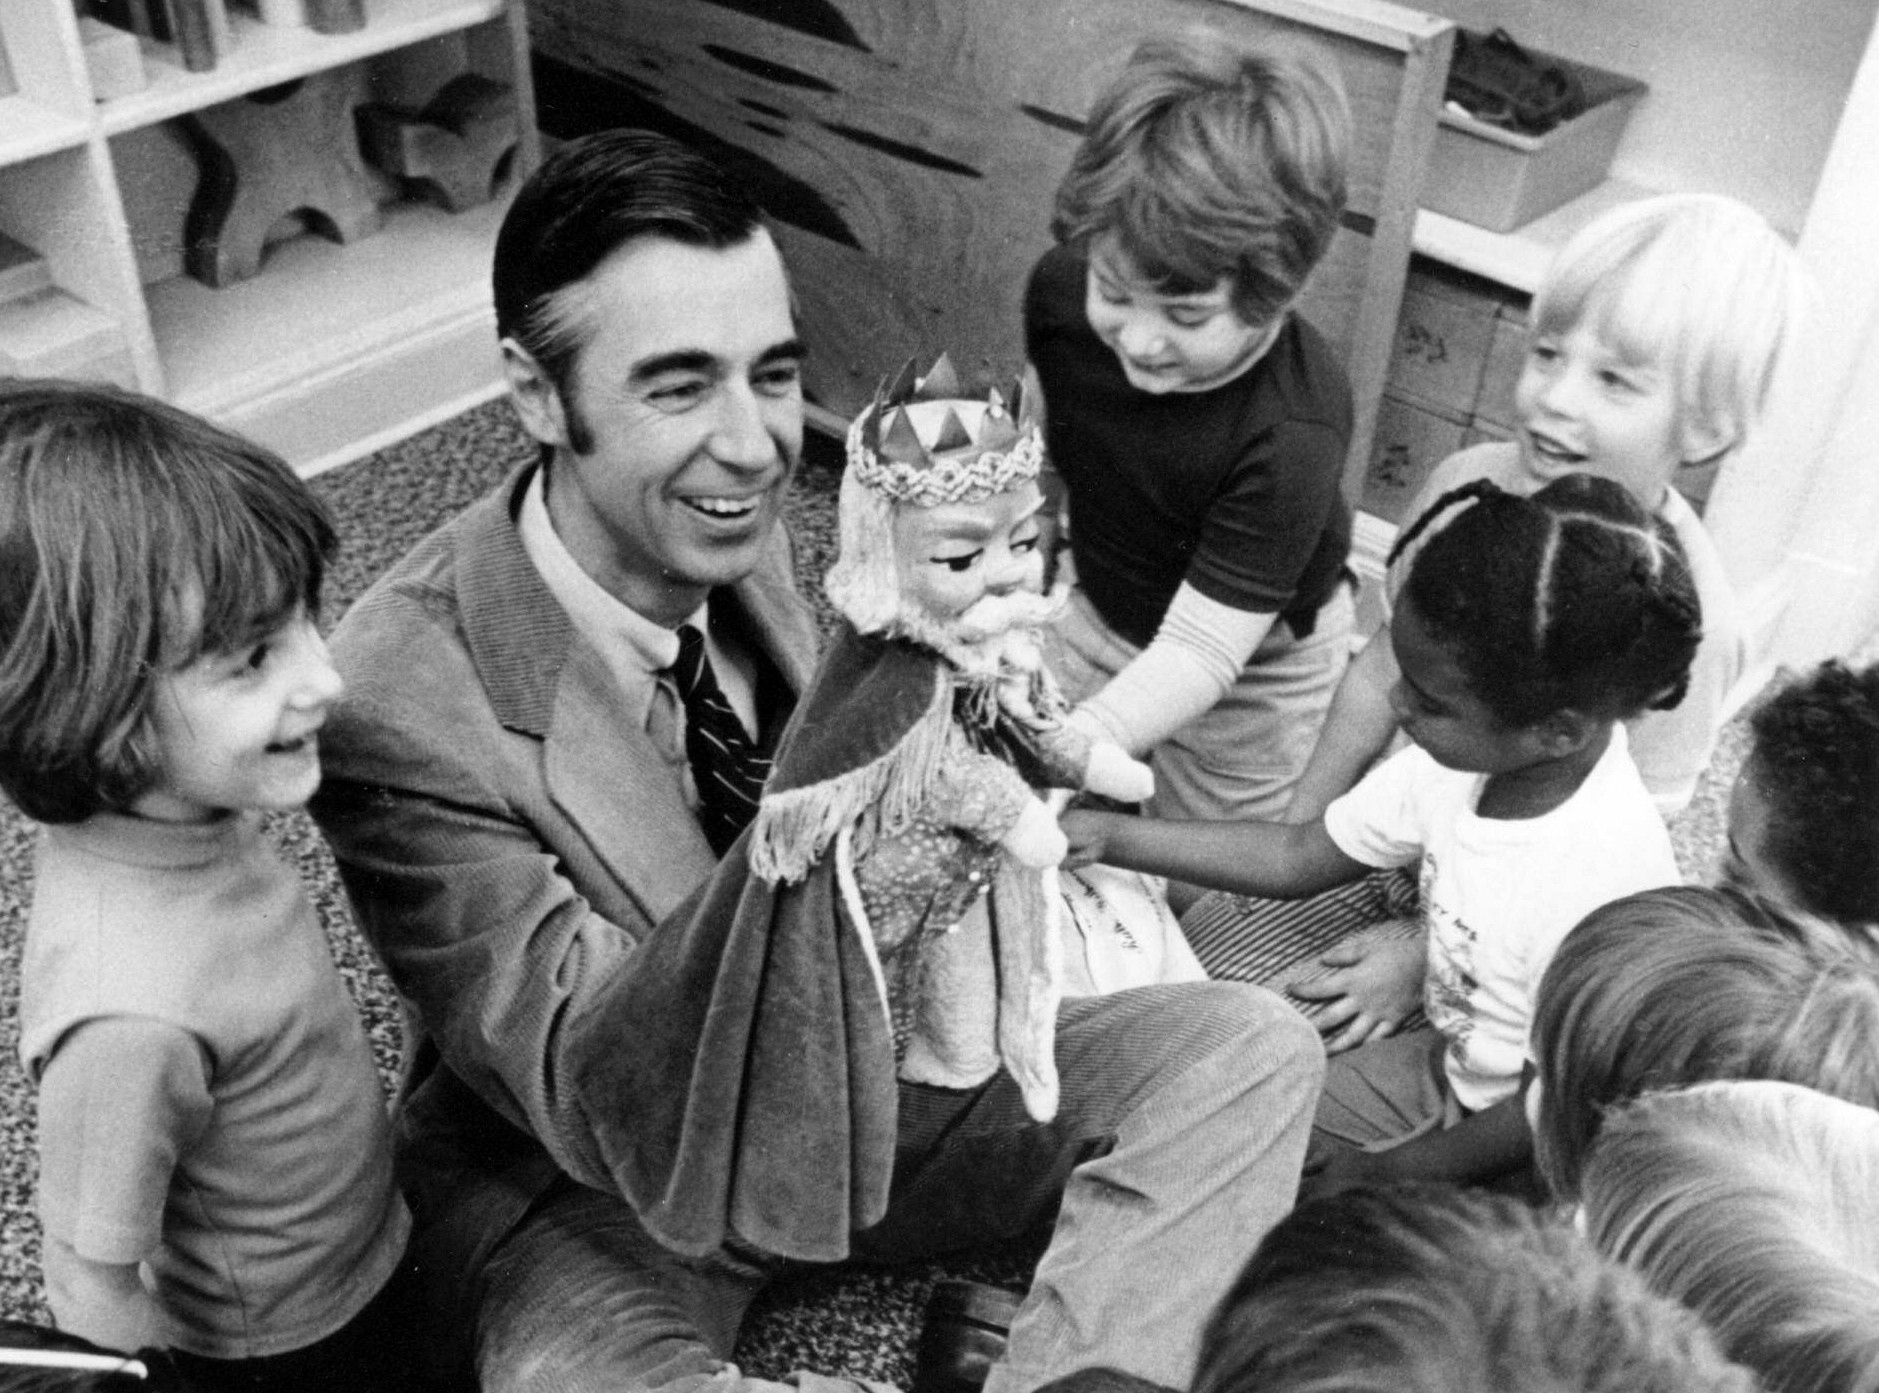 Mister Rogers Neighborhood Quotes To Give You Hope For Tomorrow By Shannon Ashley Home Sweet Home Medium